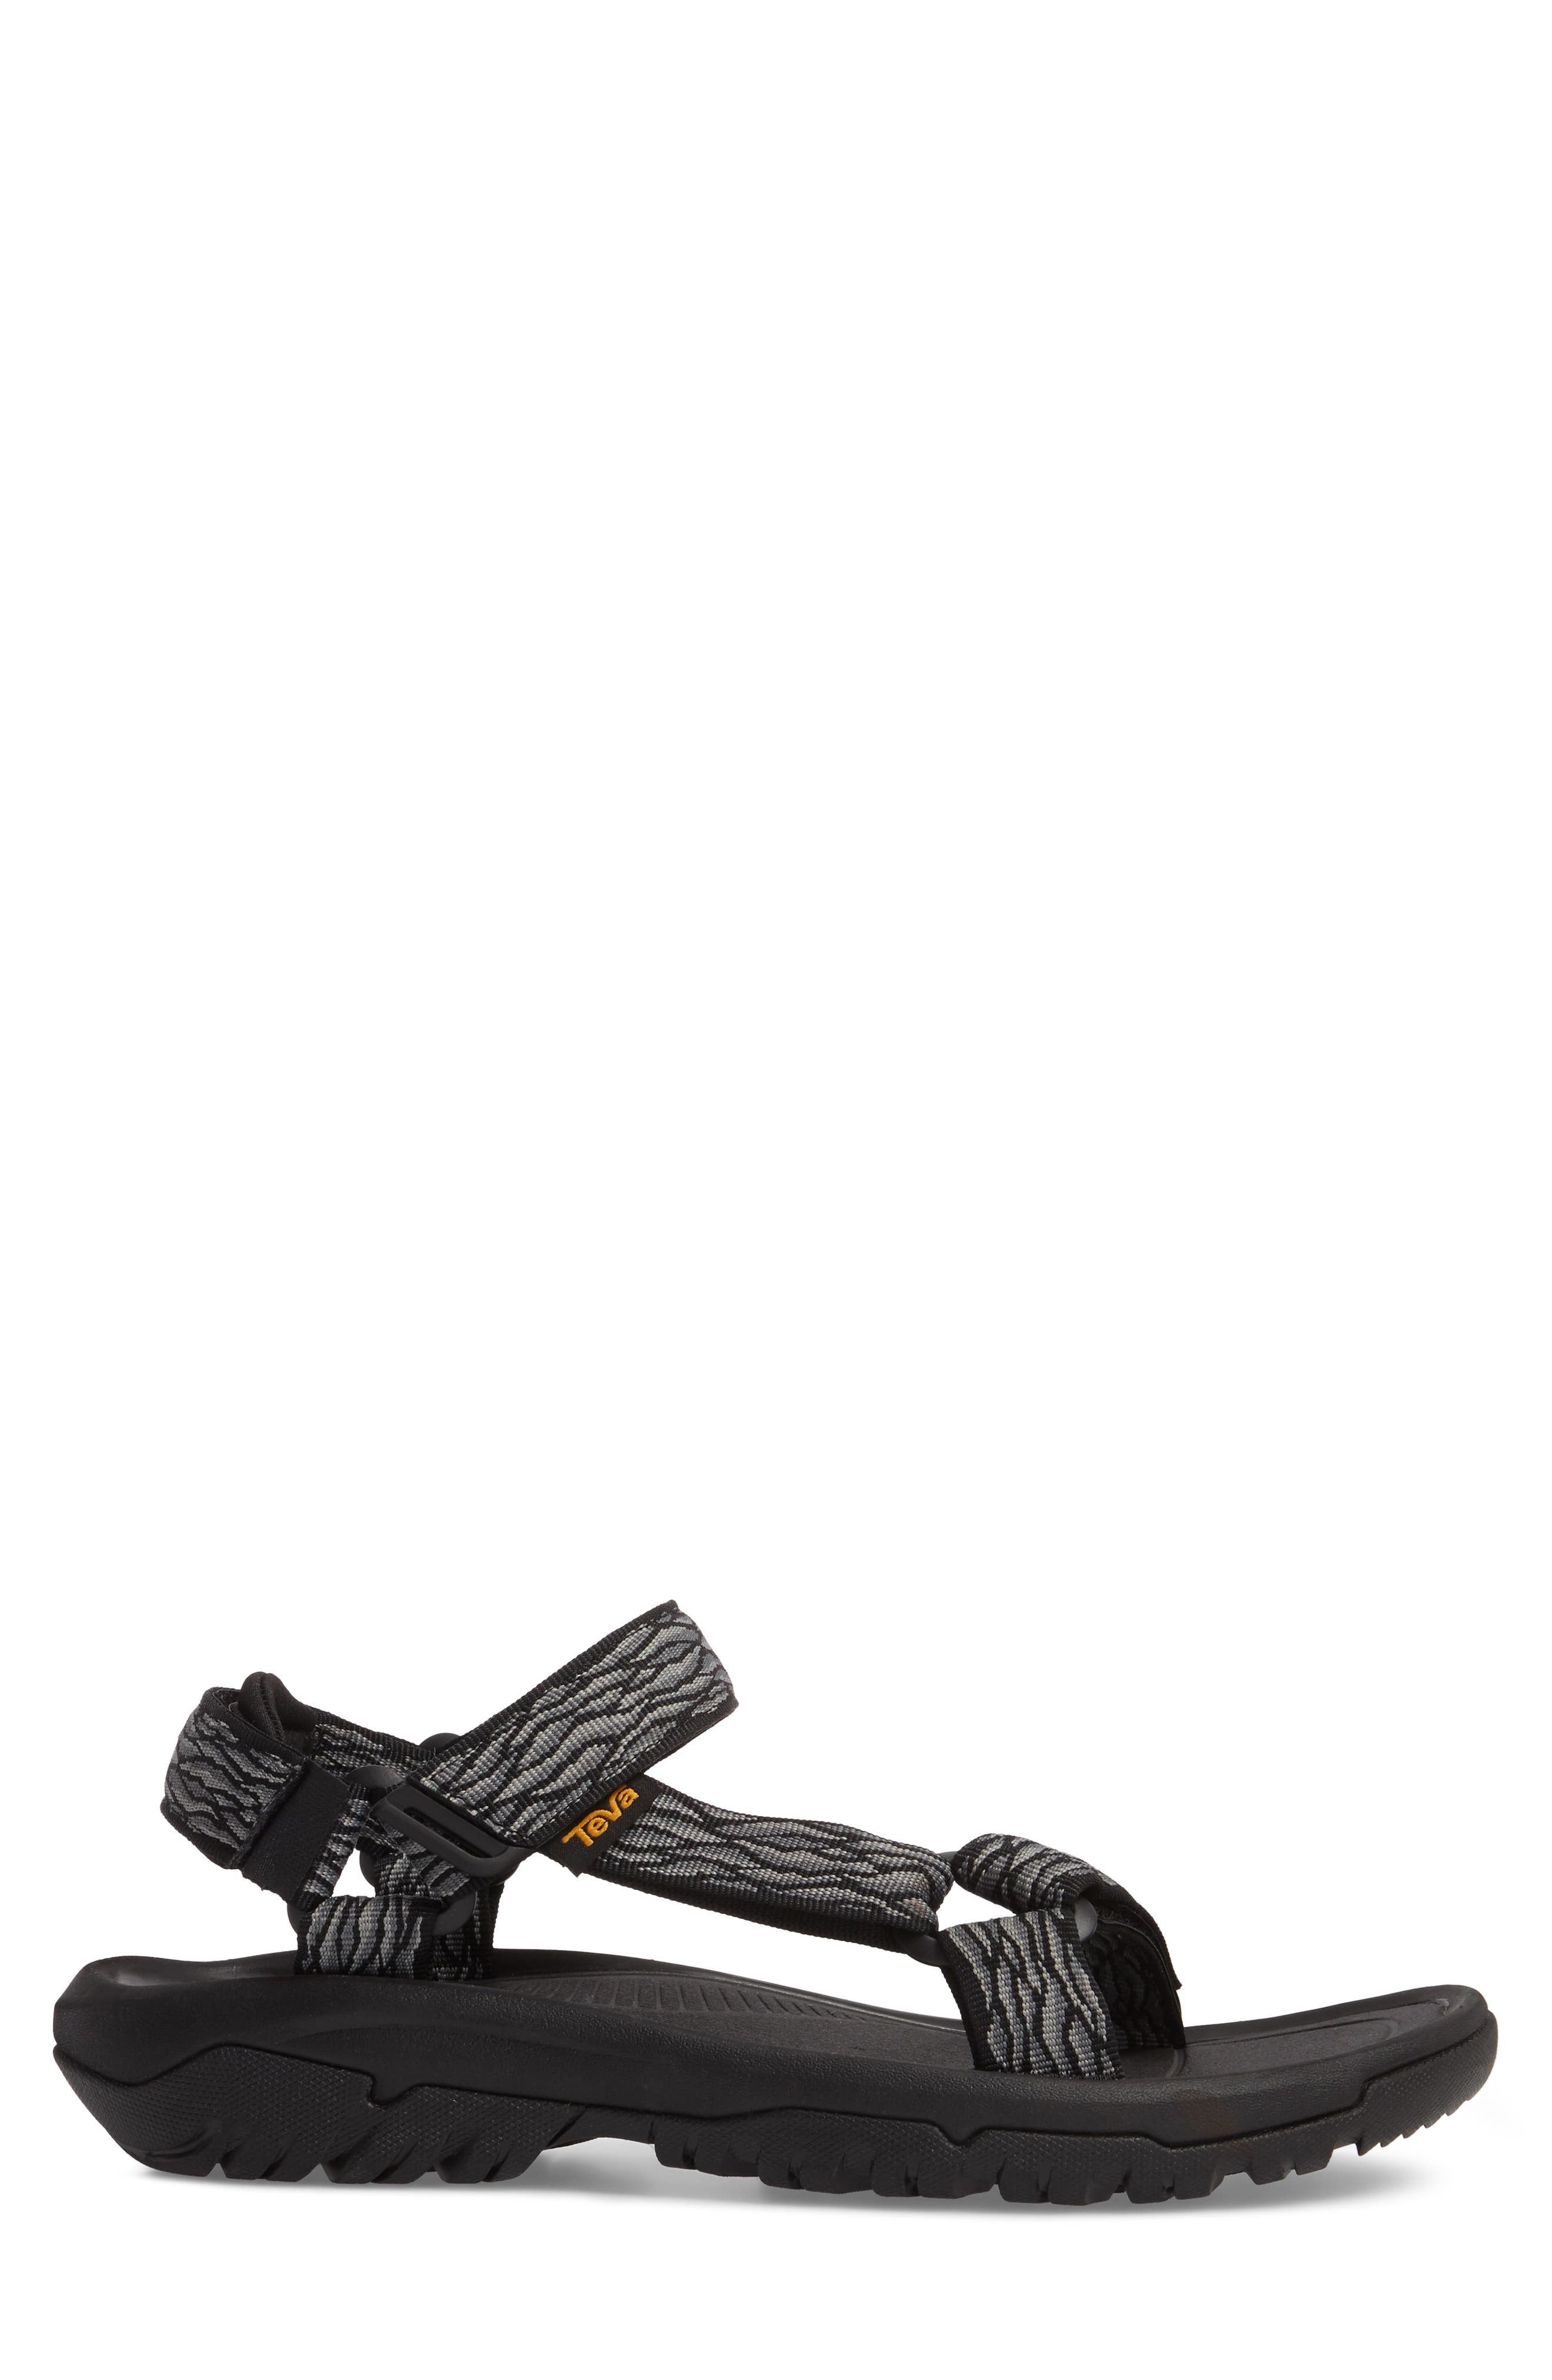 Hurricane XLT 2 Sandal,                             Alternate thumbnail 3, color,                             BLACK/ GREY NYLON